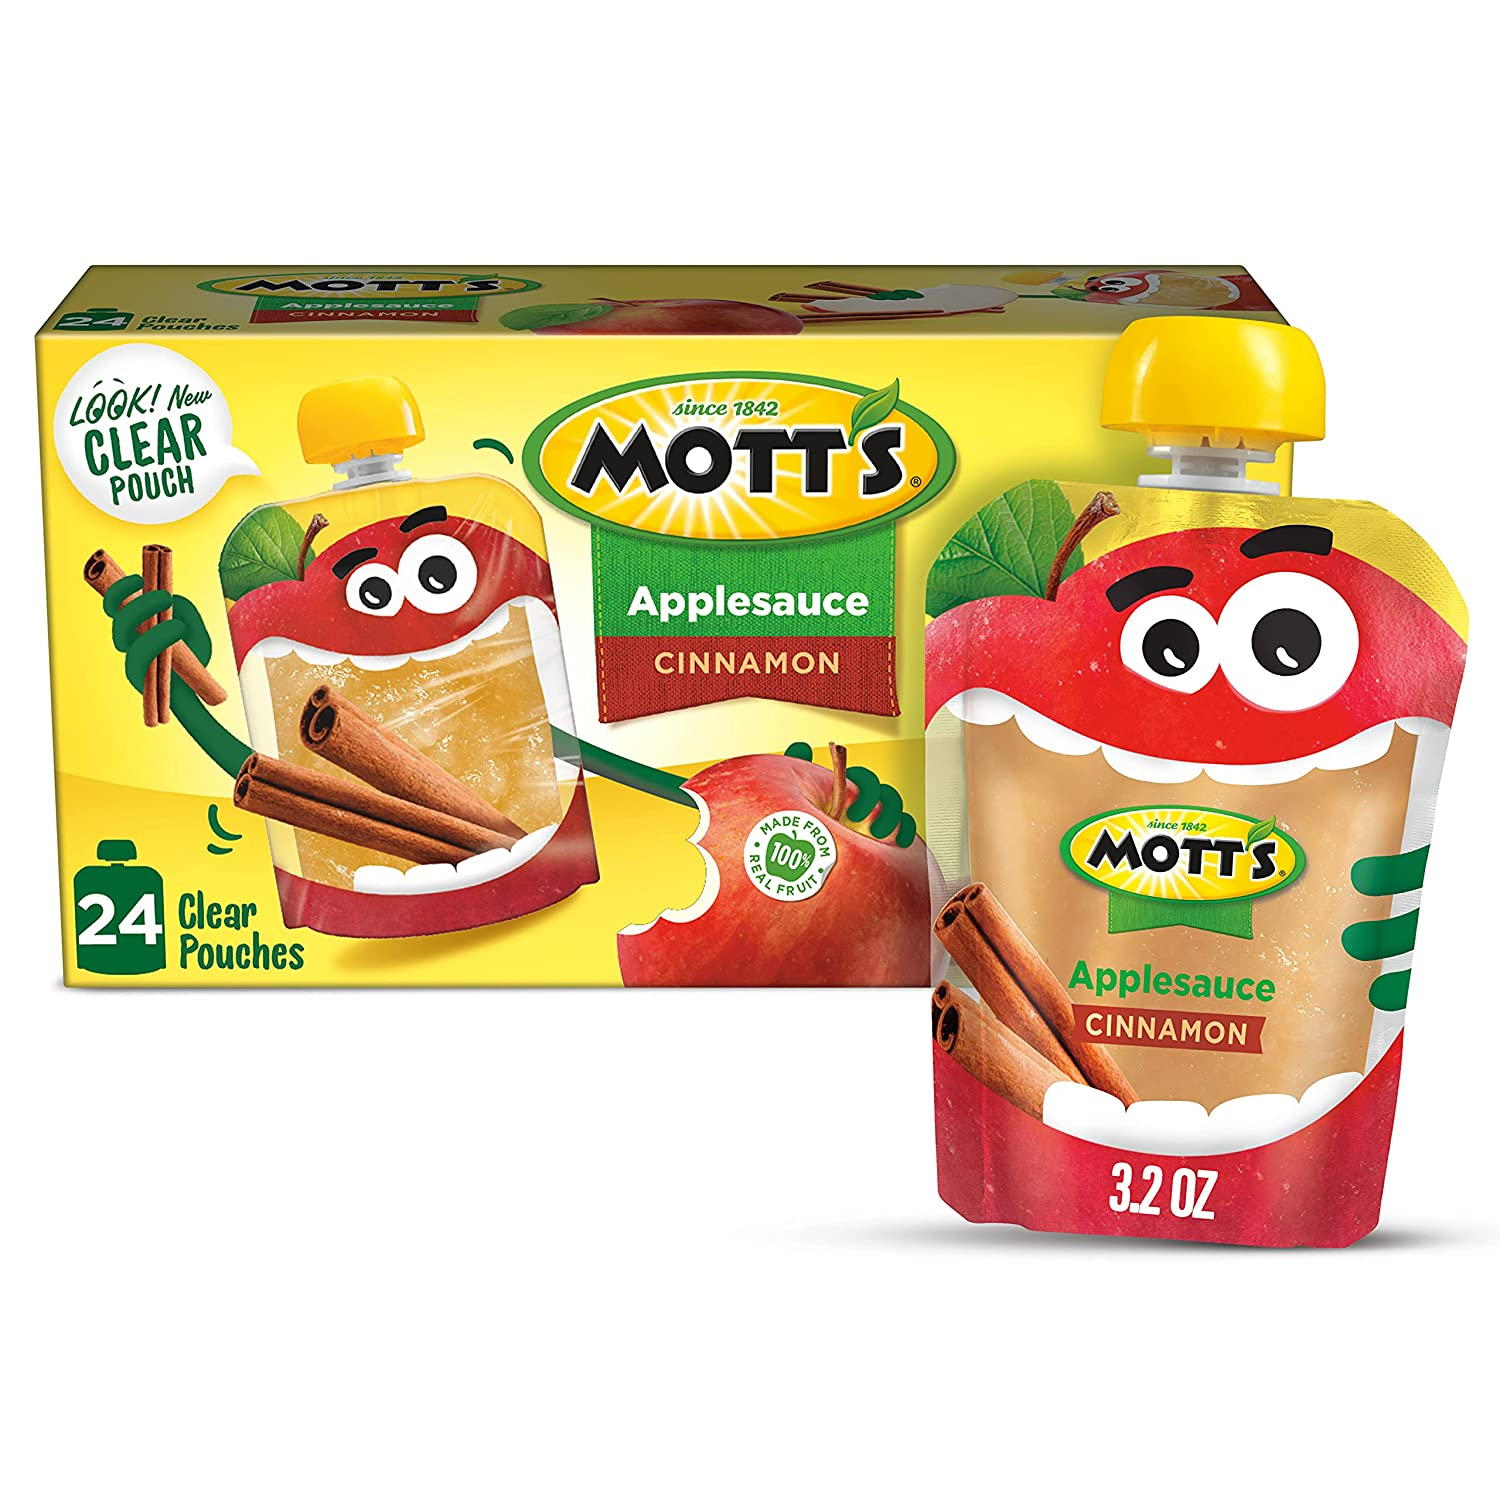 Mott's Cinnamon Applesauce, 3.2 Ounce Clear Pouch, 4 Count (Pack of 6), Perfect for on-the-go, Gluten Free and Vegan